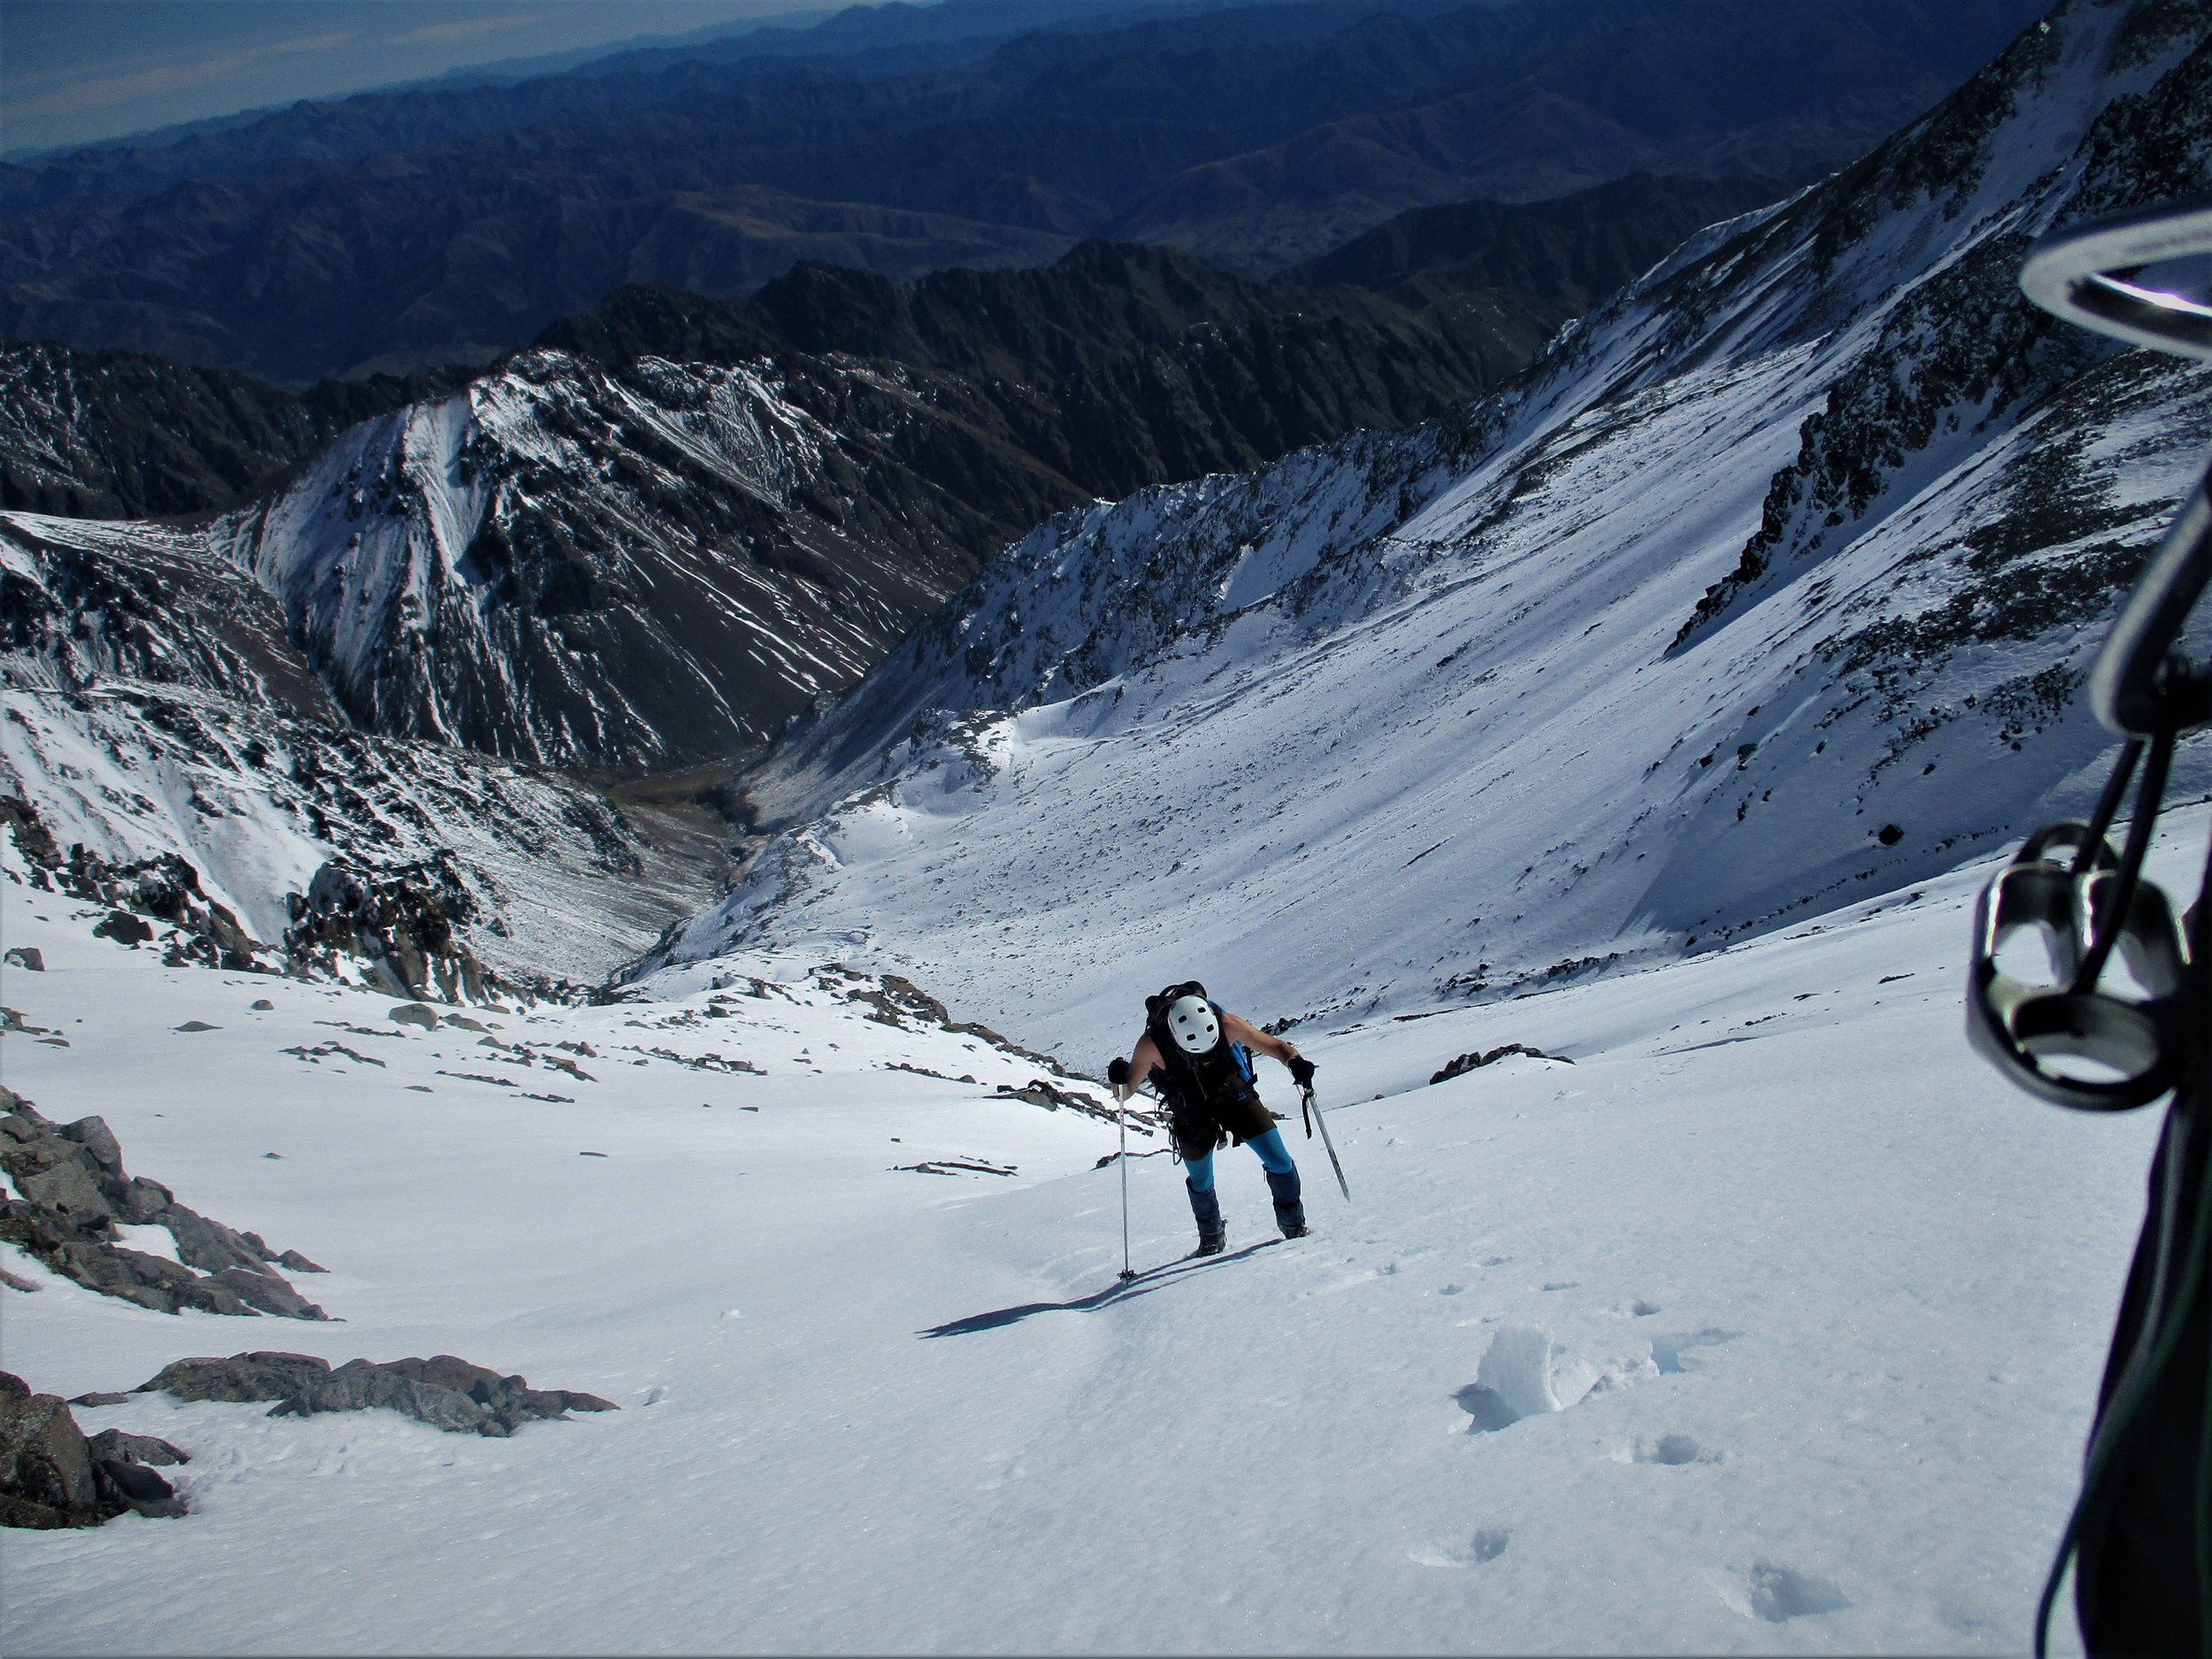 Carl plods on , most of Tapuaenuku was just hard work with soft snow under a thin crust making it extra hard.